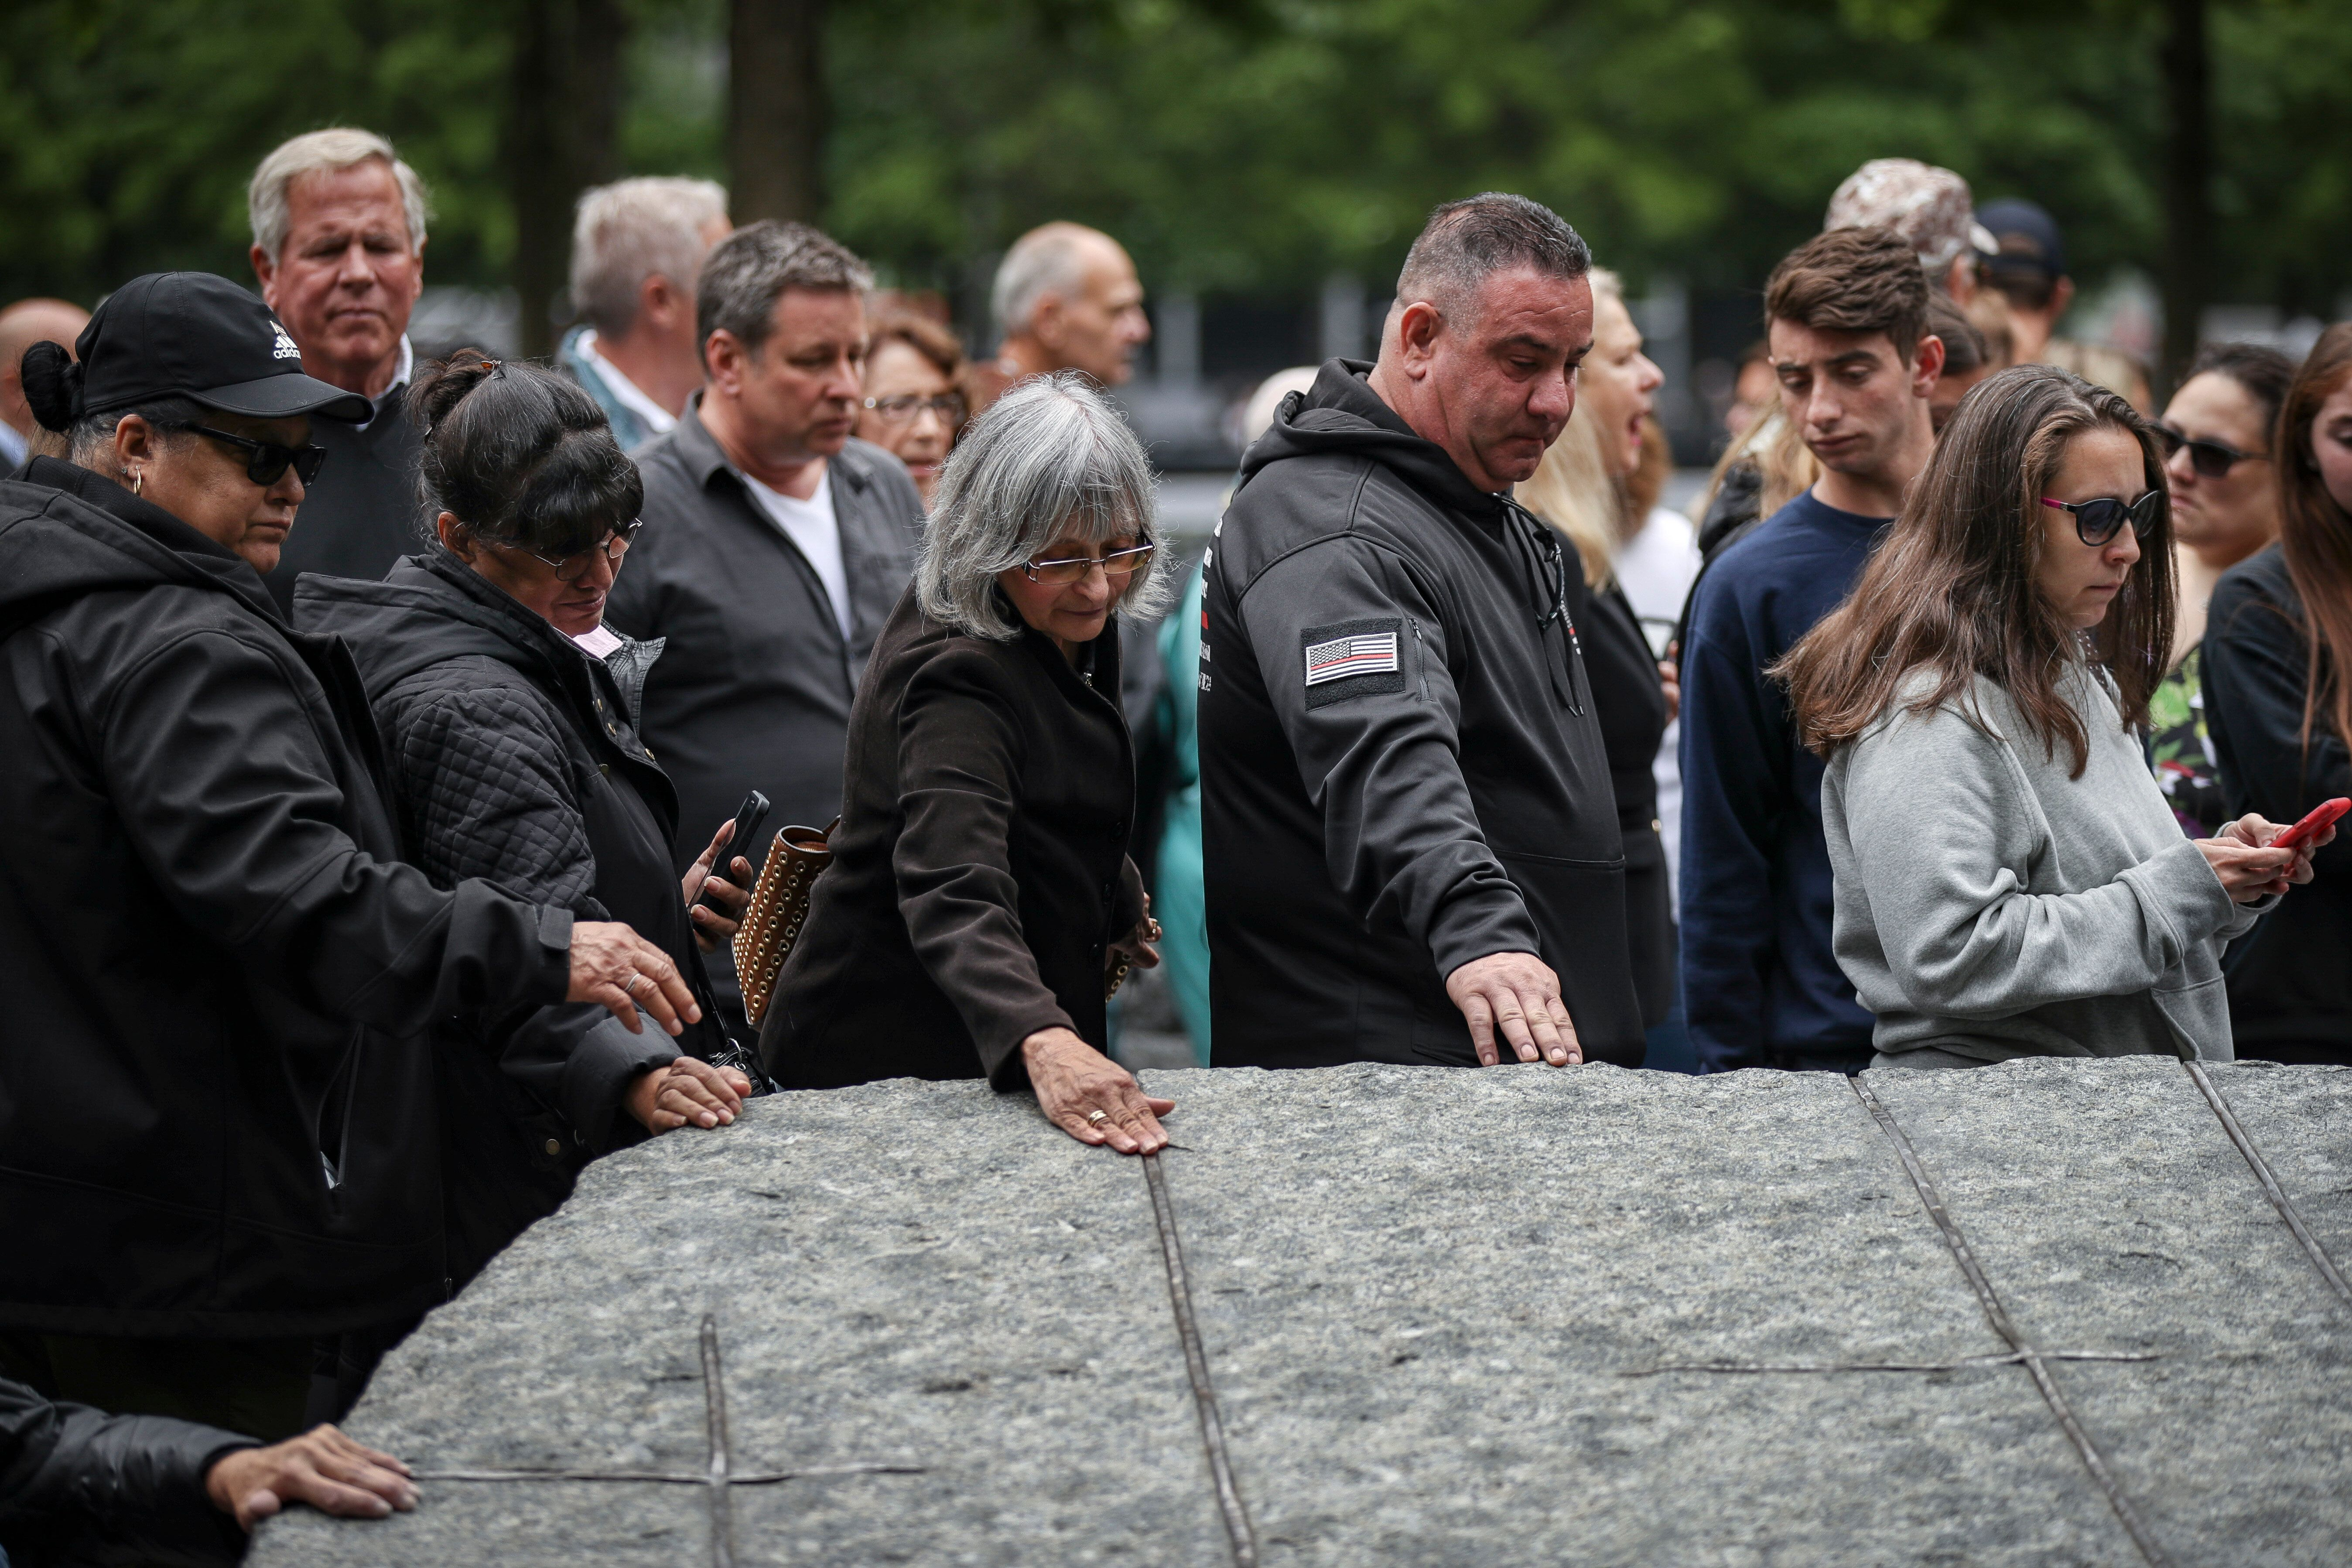 NEW YORK, NY - MAY 30: Attendees touch one of the stone monoliths following the dedication ceremony for the new 9/11 Memorial